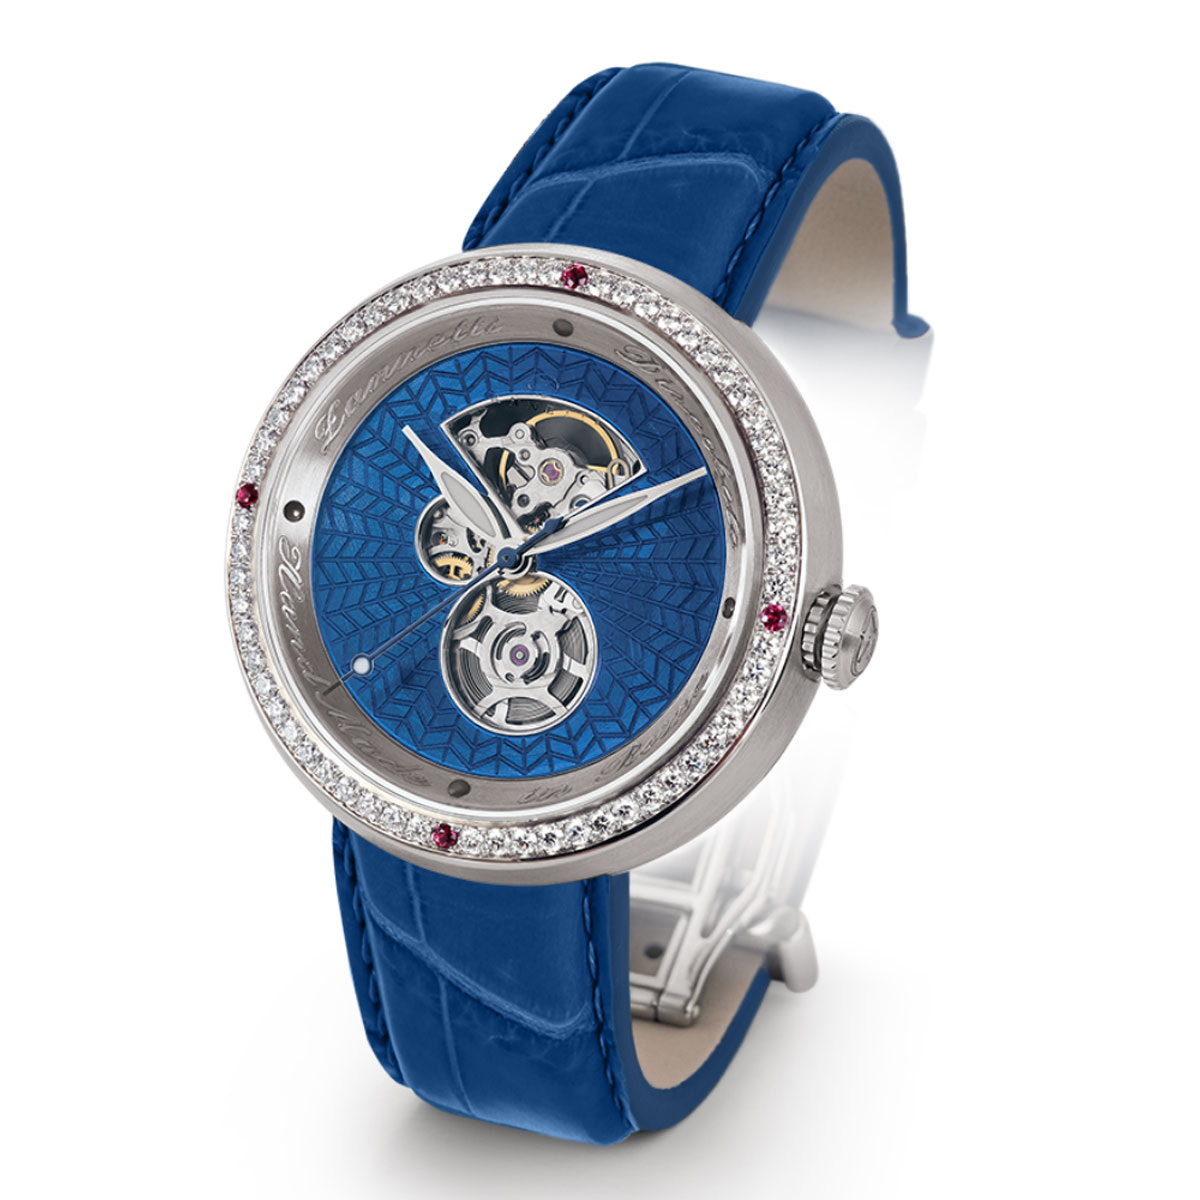 Zannetti Discobolo Men's Watch – Blue Enamel Dial - Diamonds - Stainless Steel